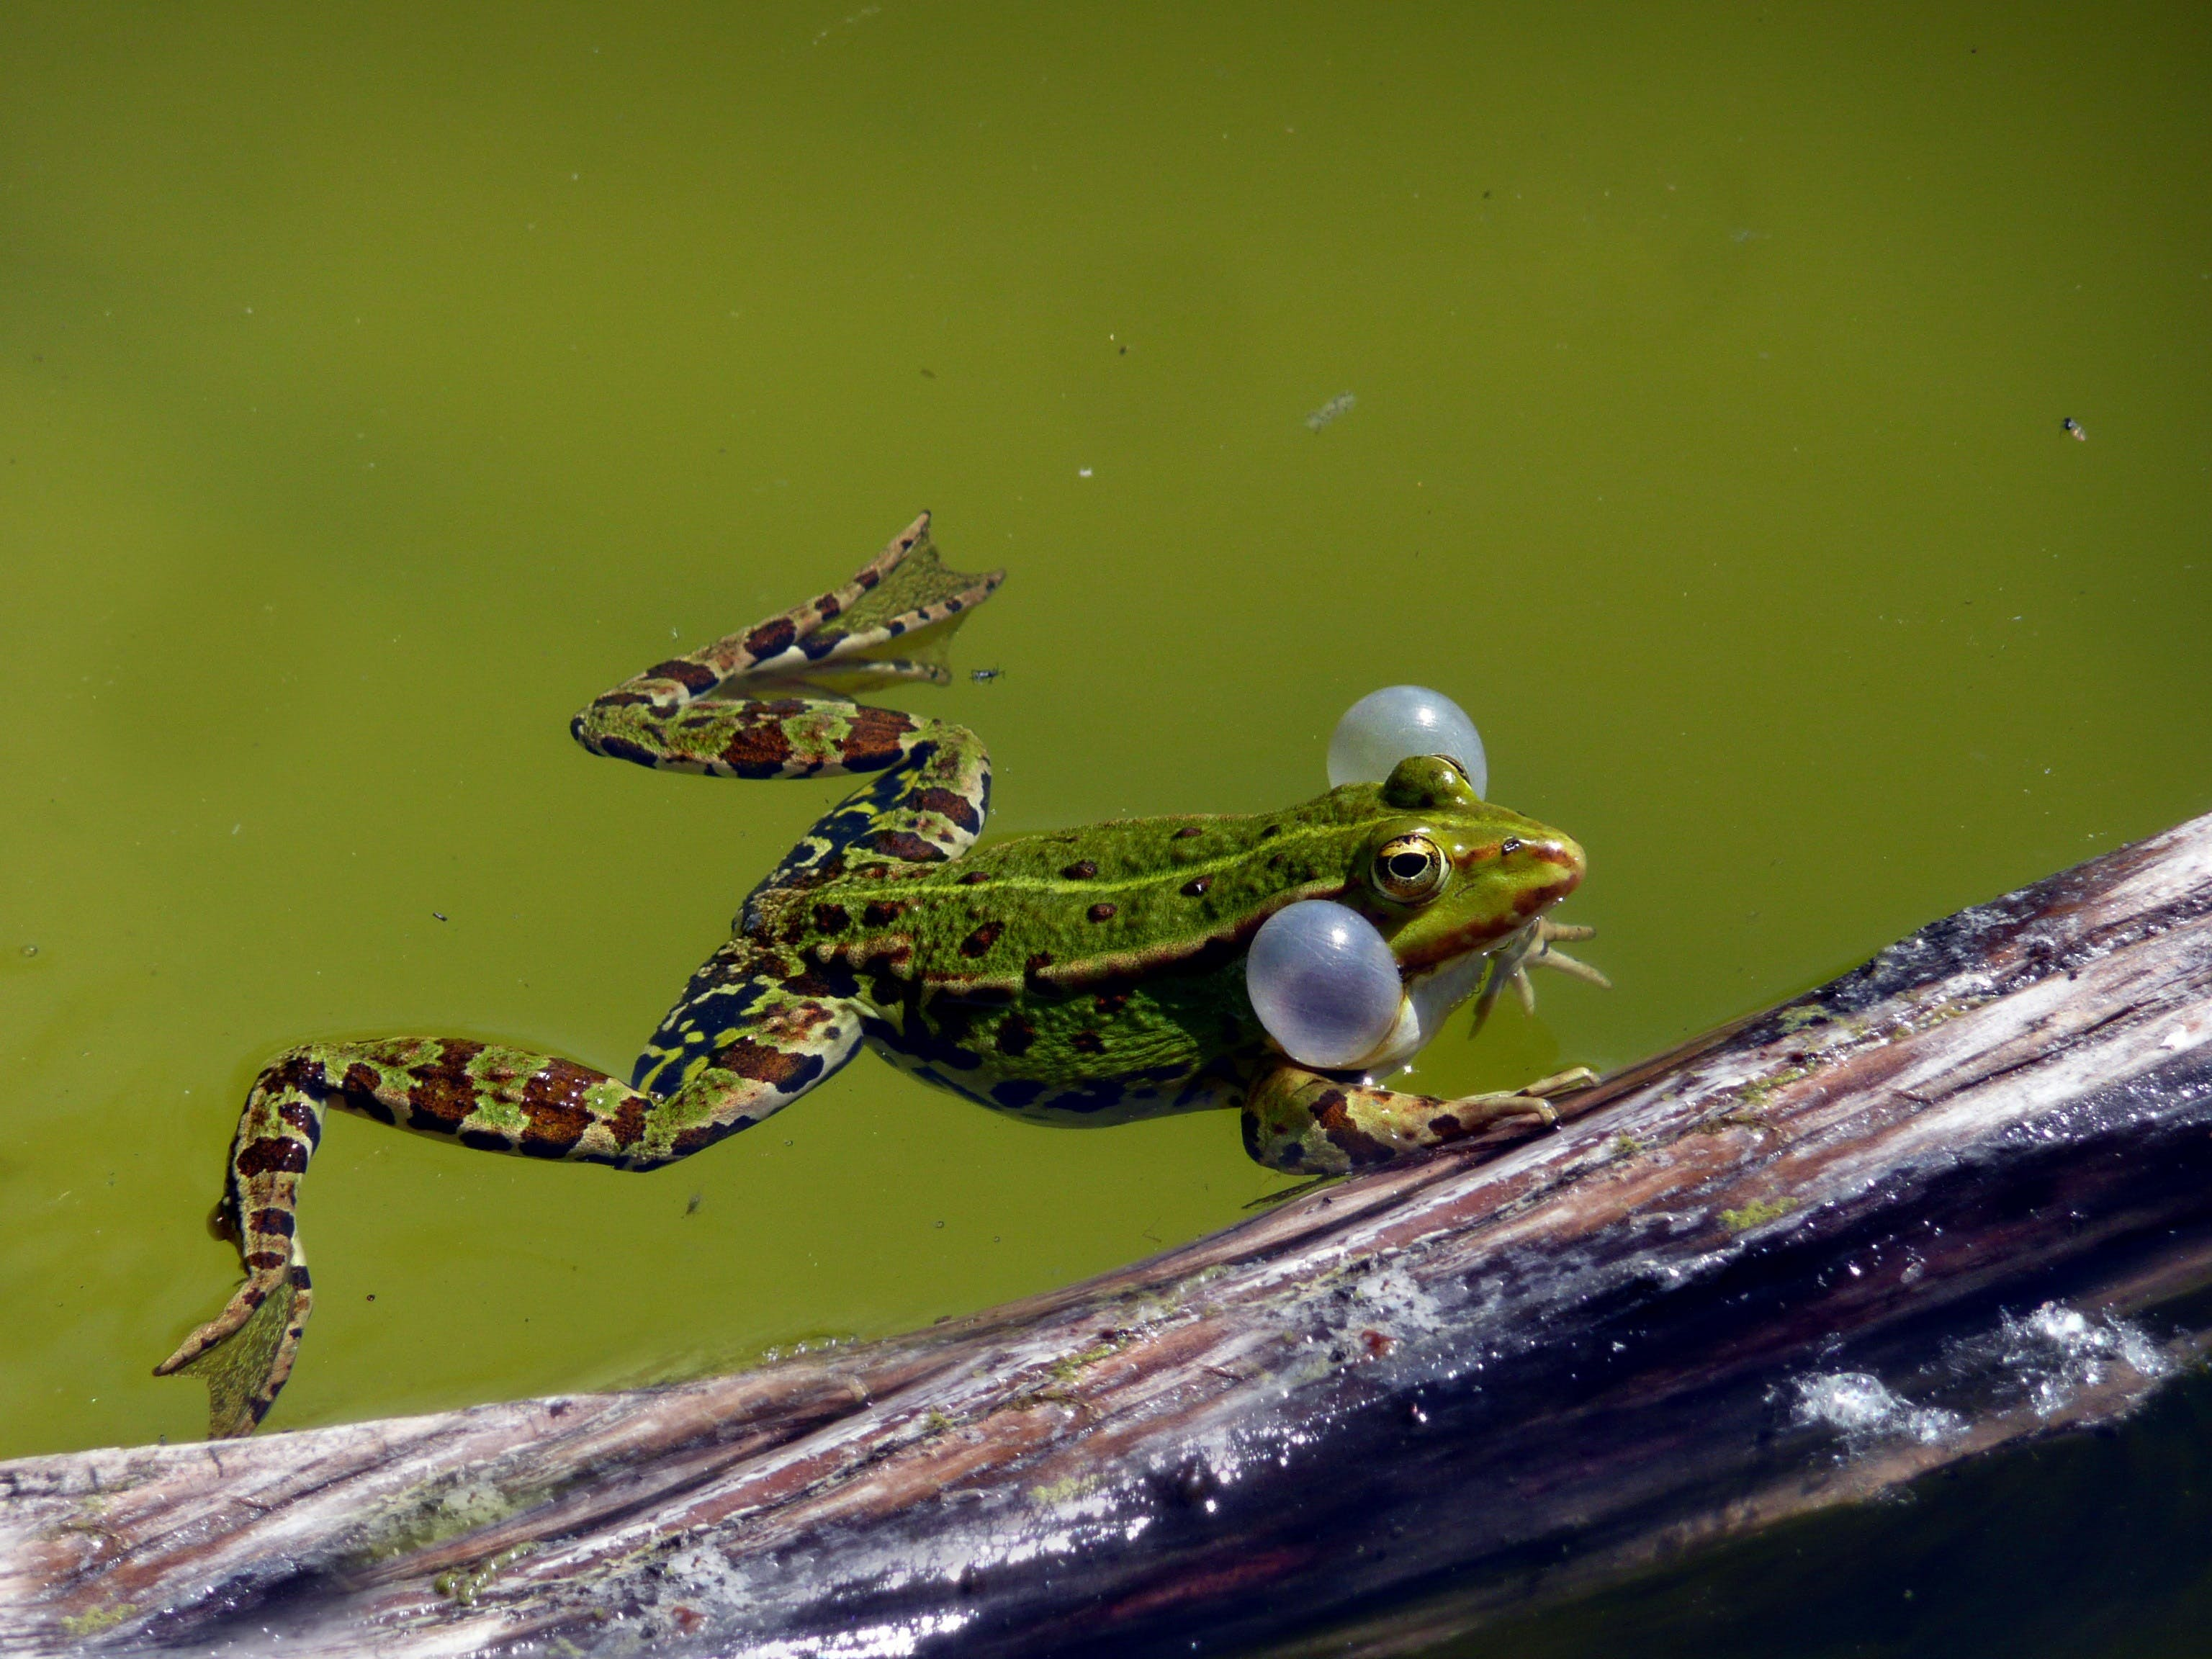 Free stock photo of spring, water frog, garden pond, sound bubbles